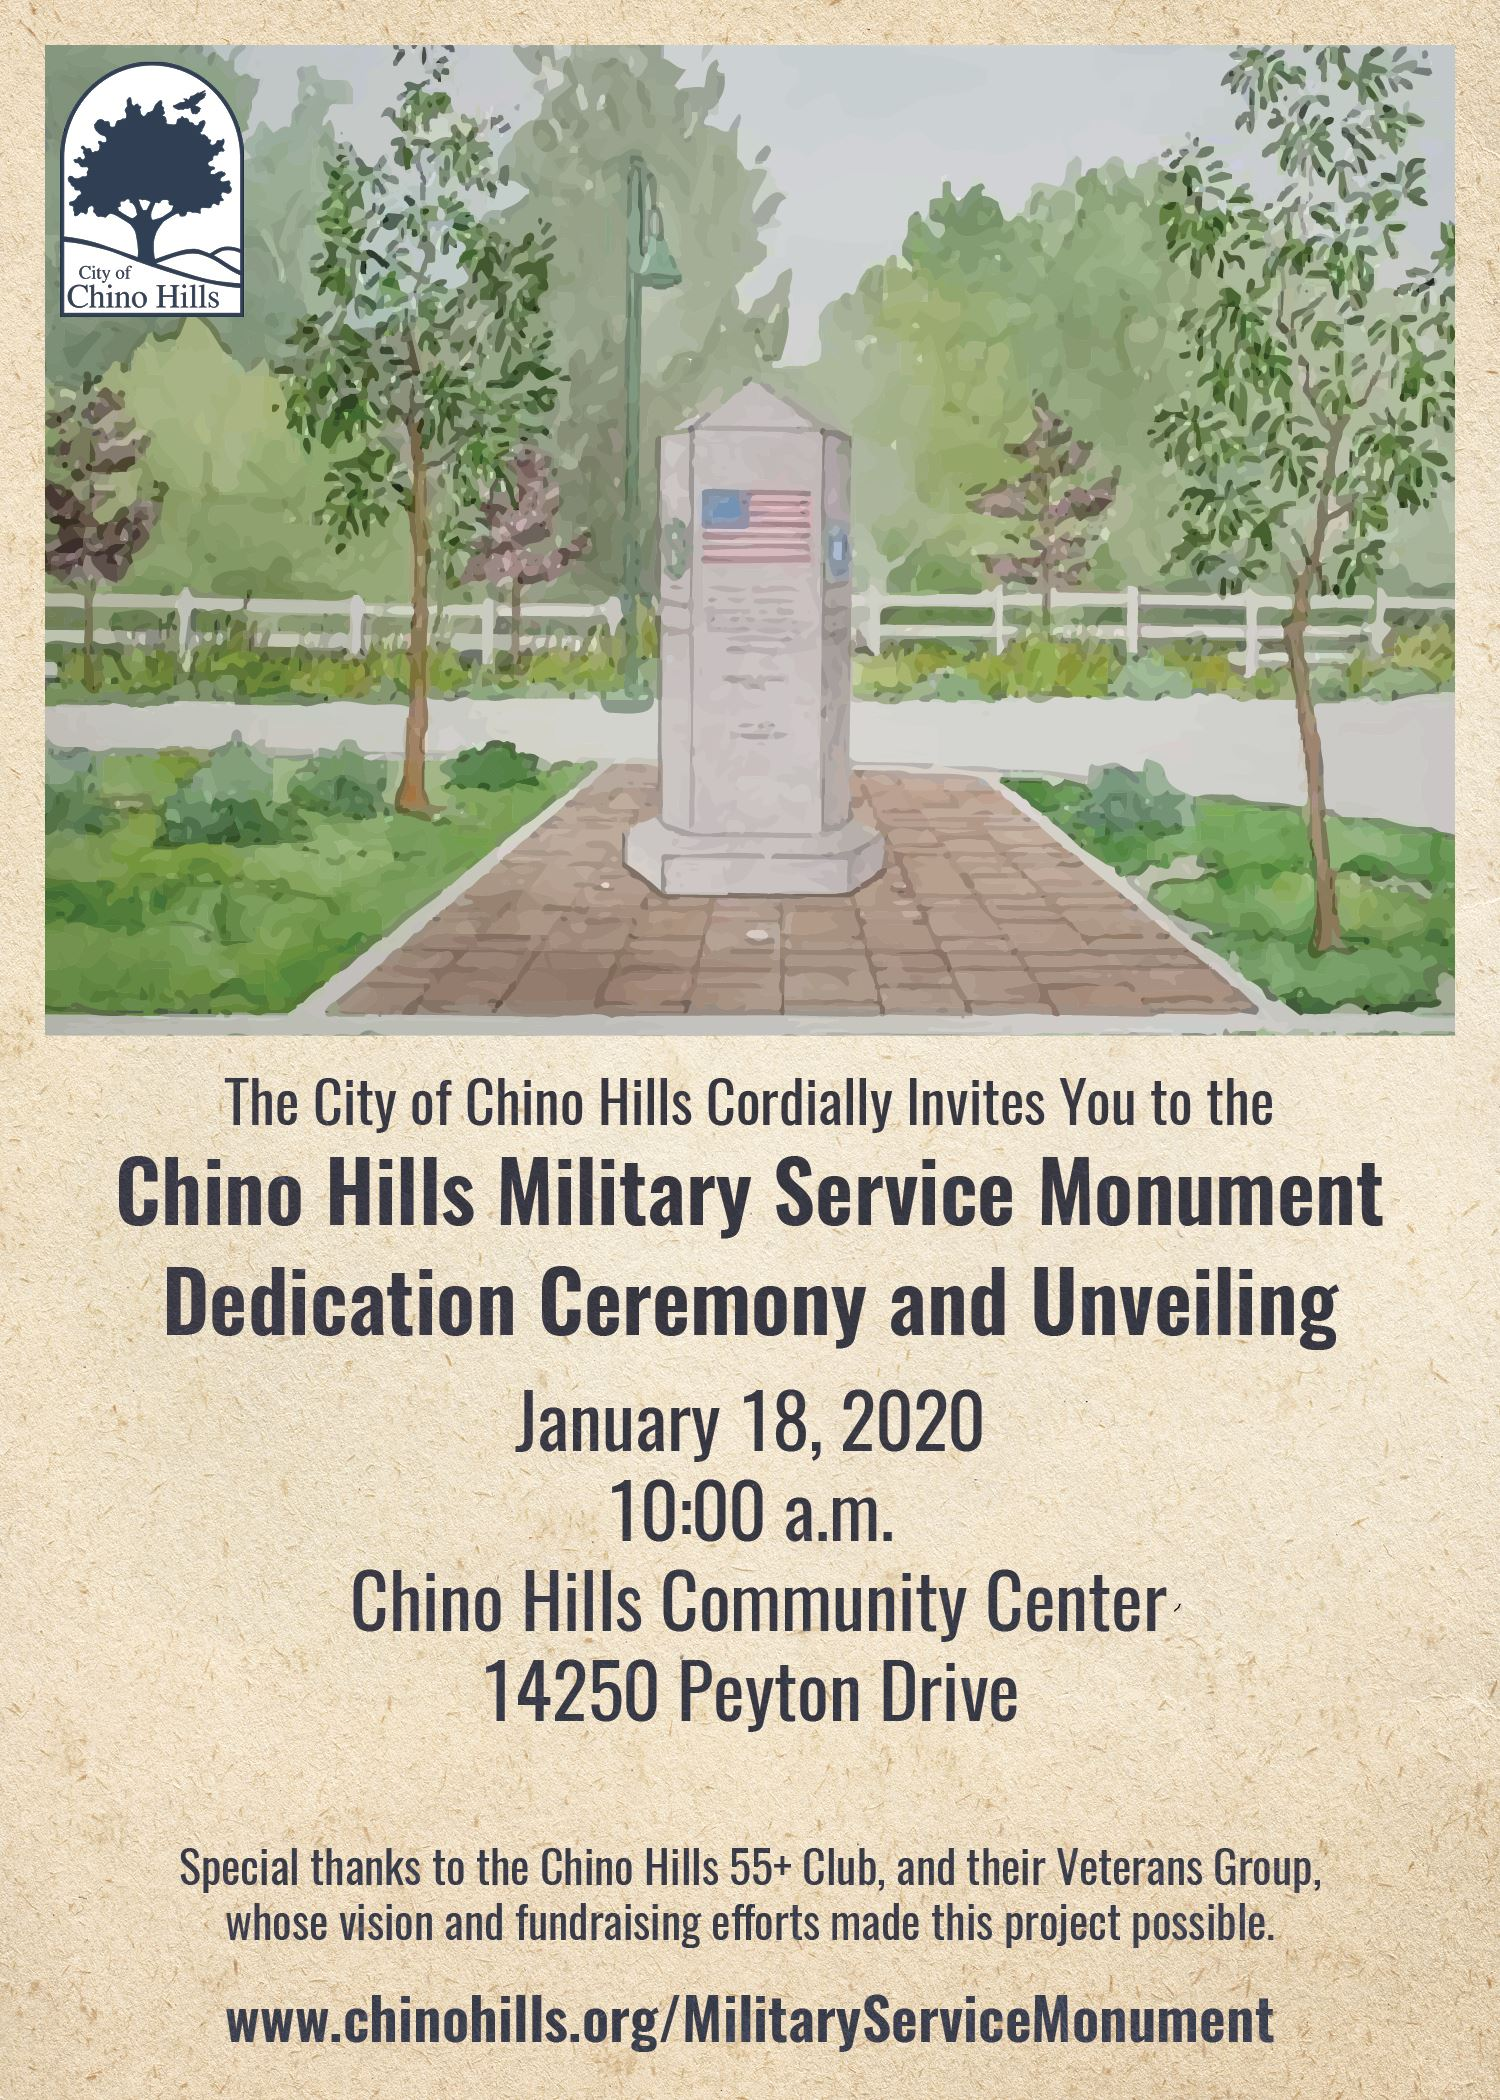 Chino Hills Military Service Monument Dedication and Unveiling Event